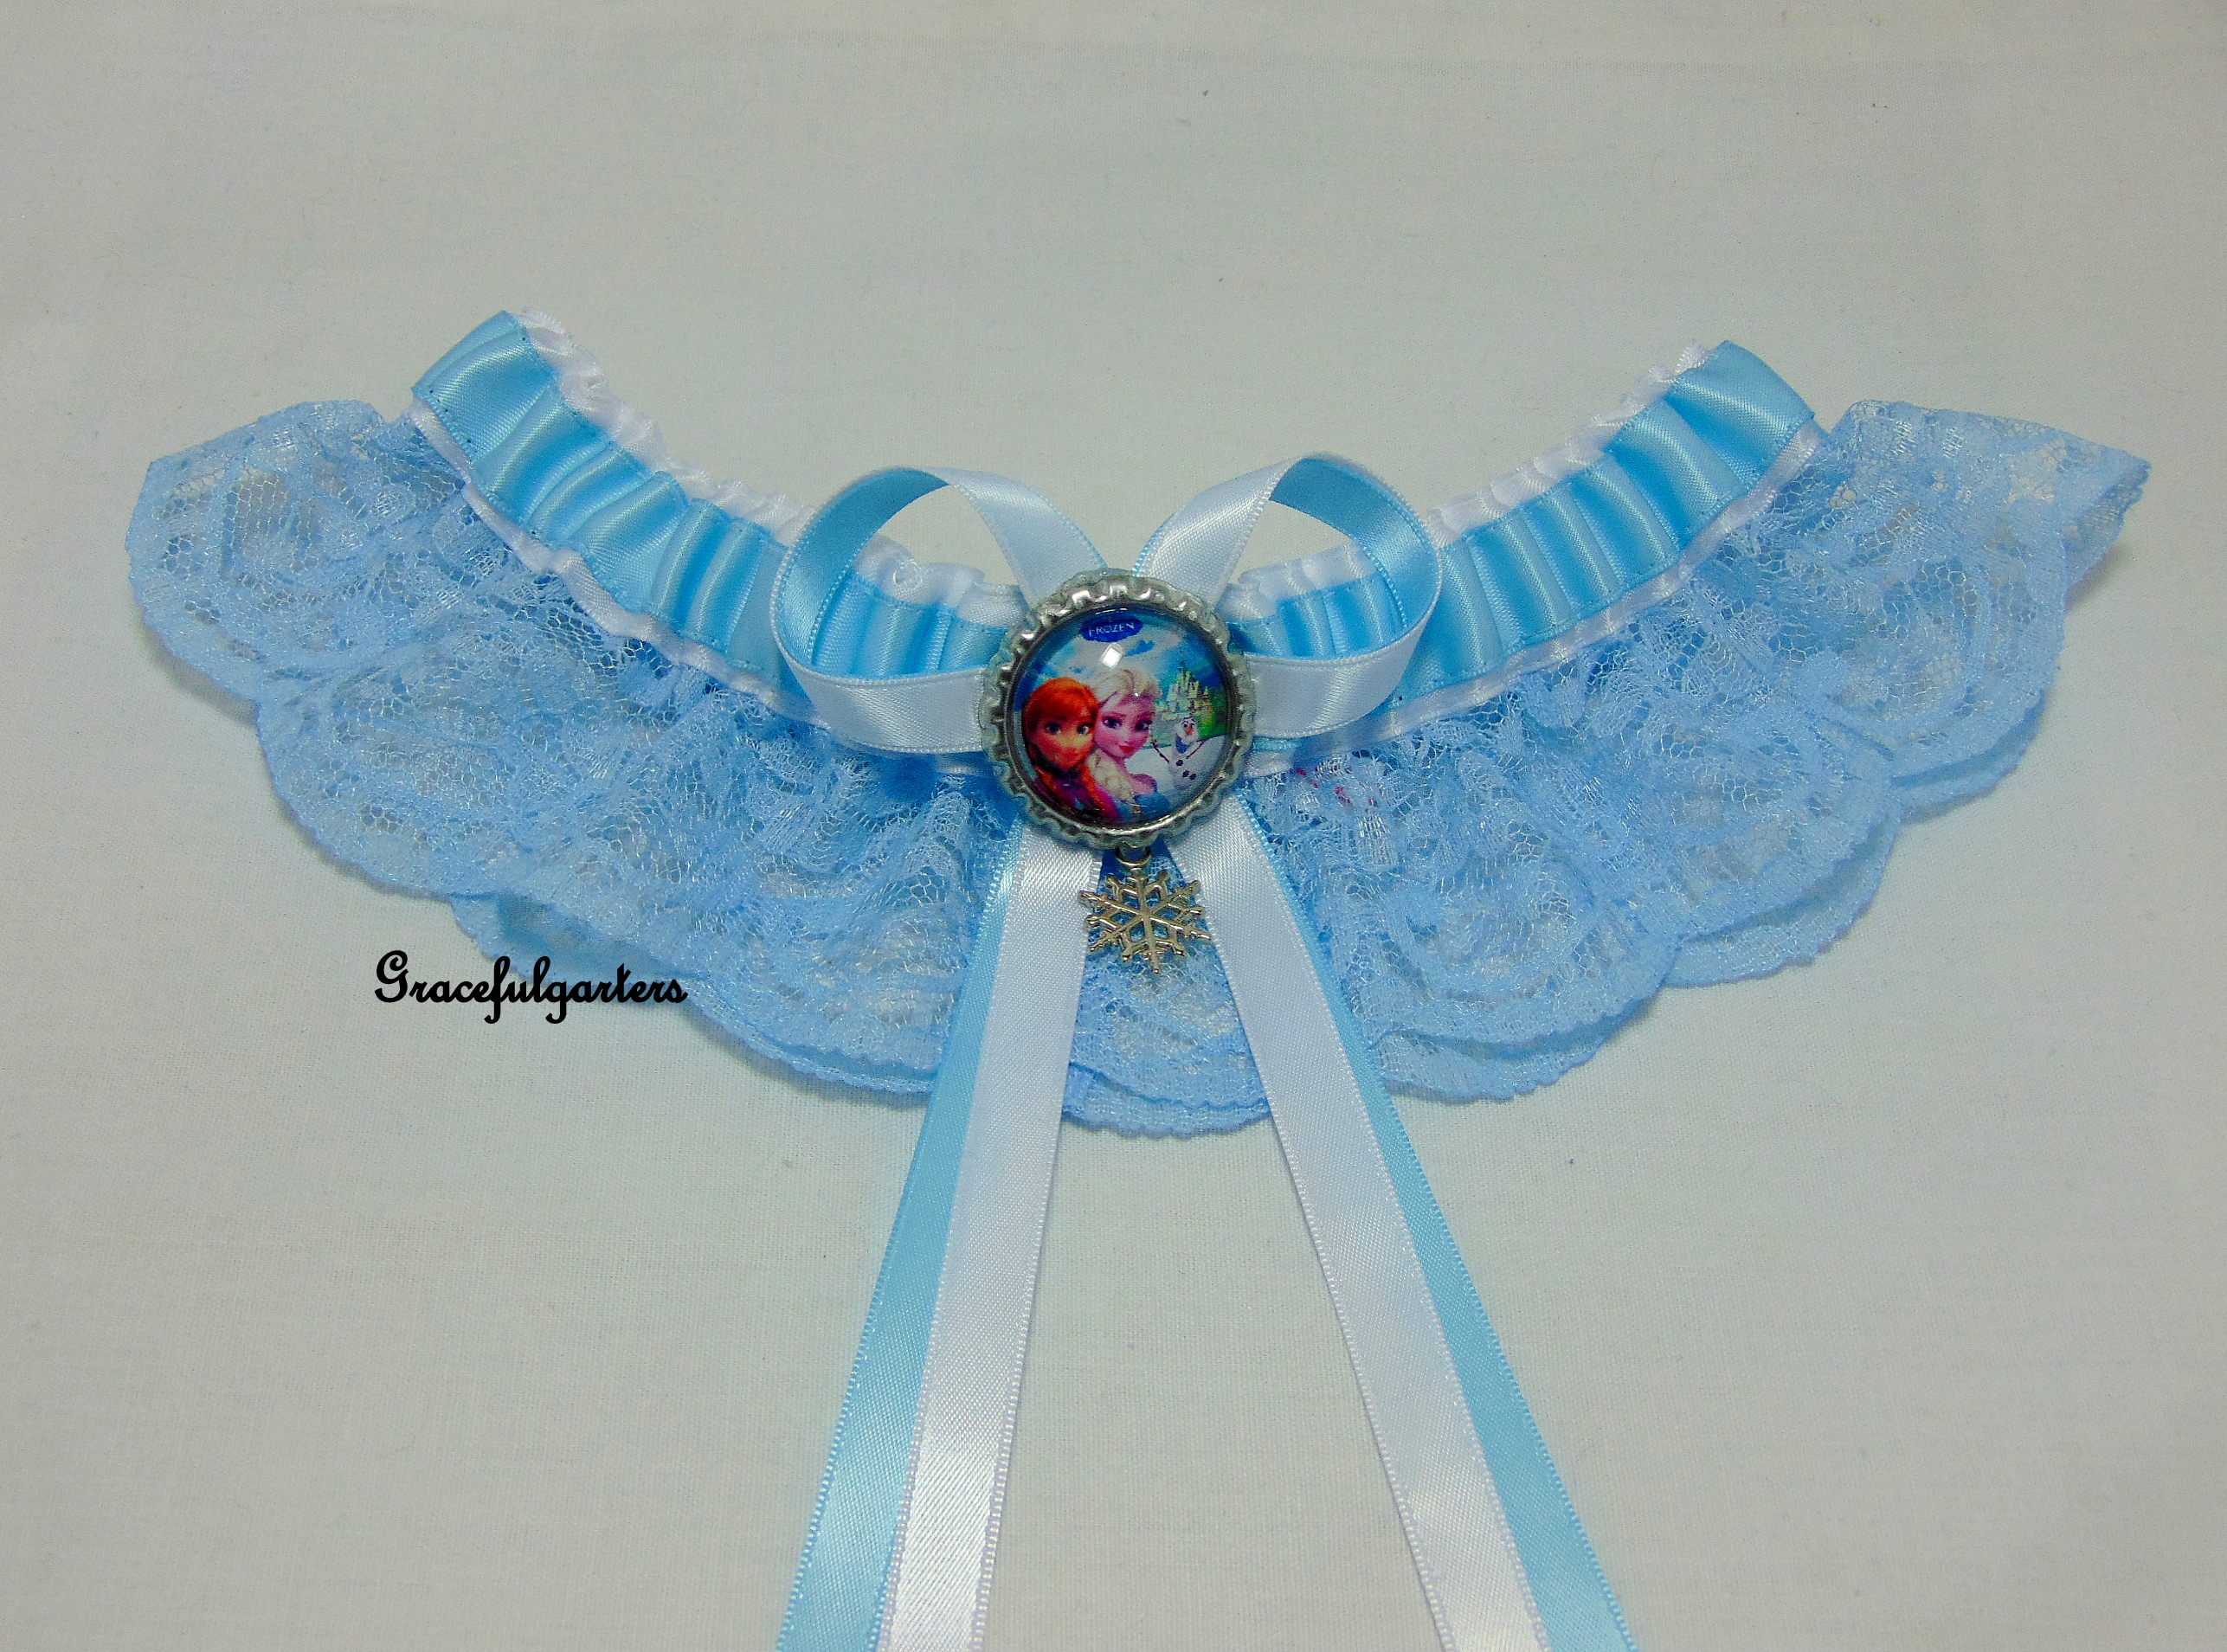 Frozen Disney Anna & Elsa Bridal Wedding Garter